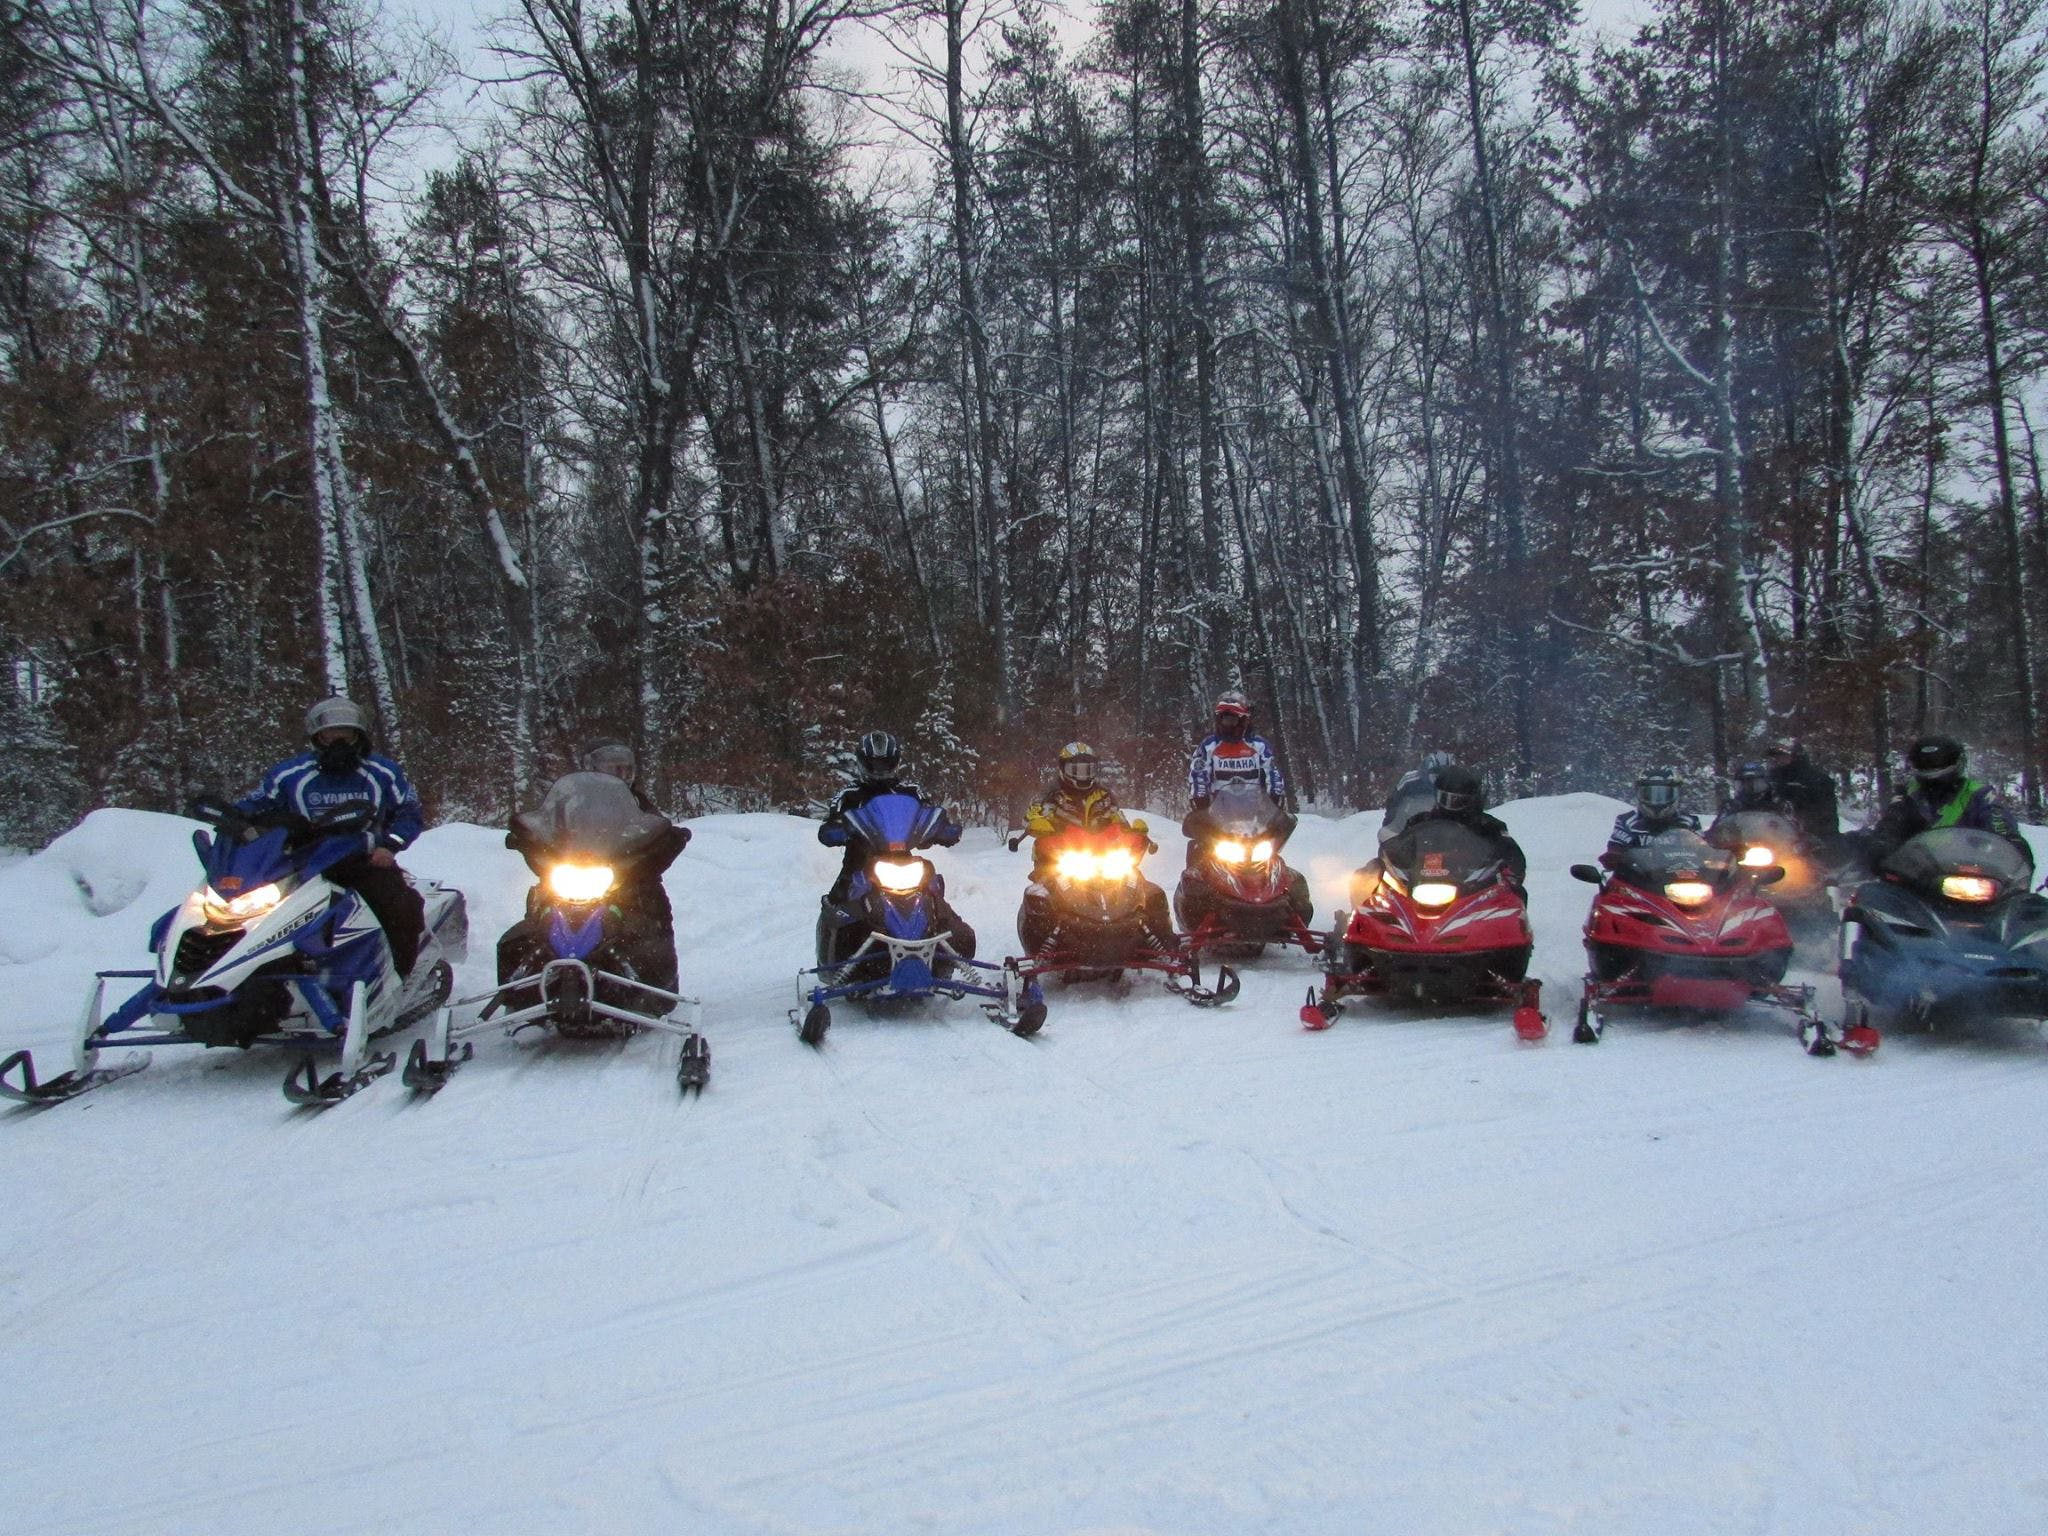 winter accommodations and direct snowmobile trail access make us popular